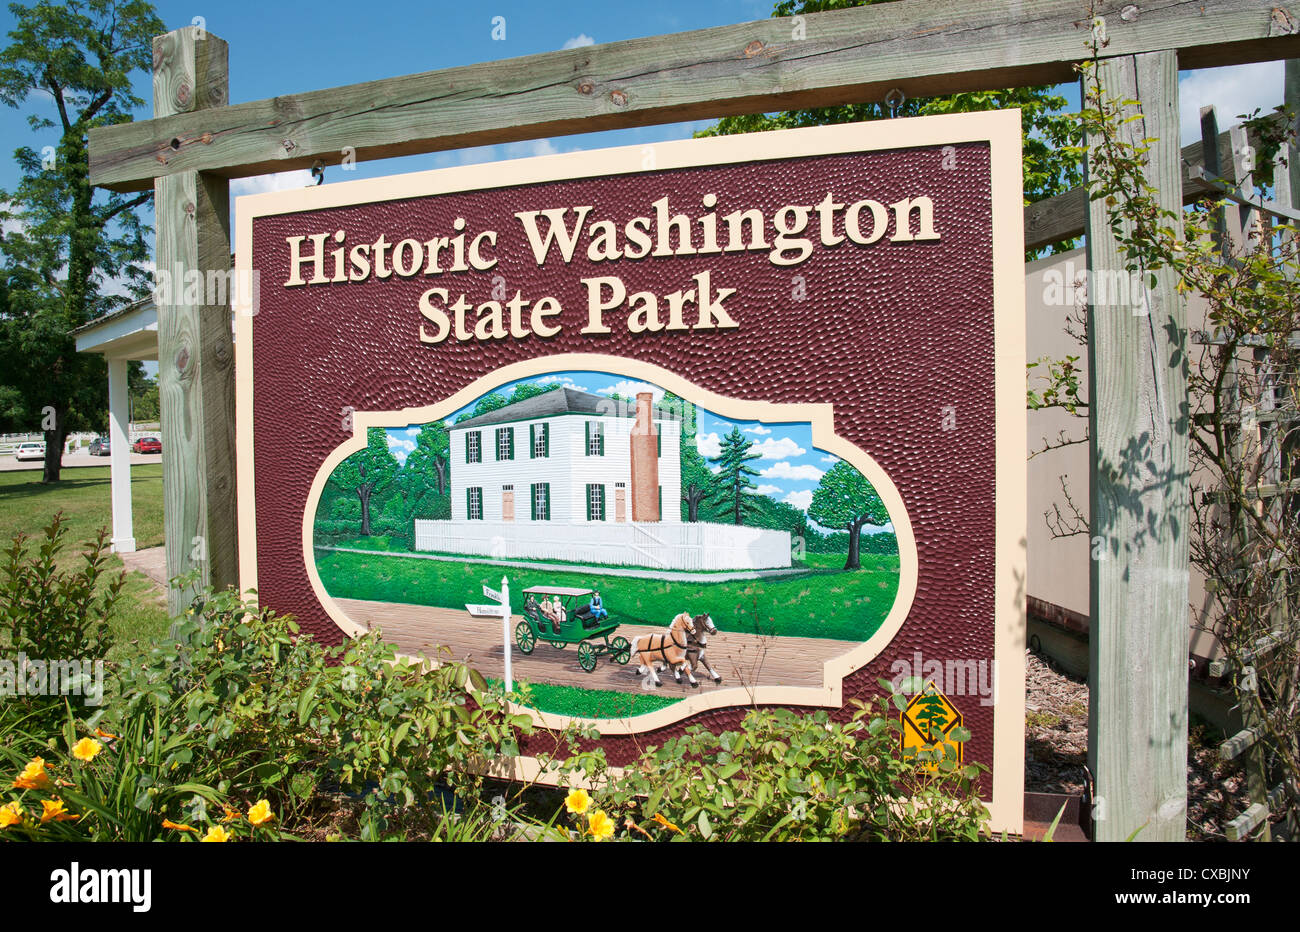 Arkansas, Washington, Historic Washington State Park, living history museum interprets the village history from - Stock Image